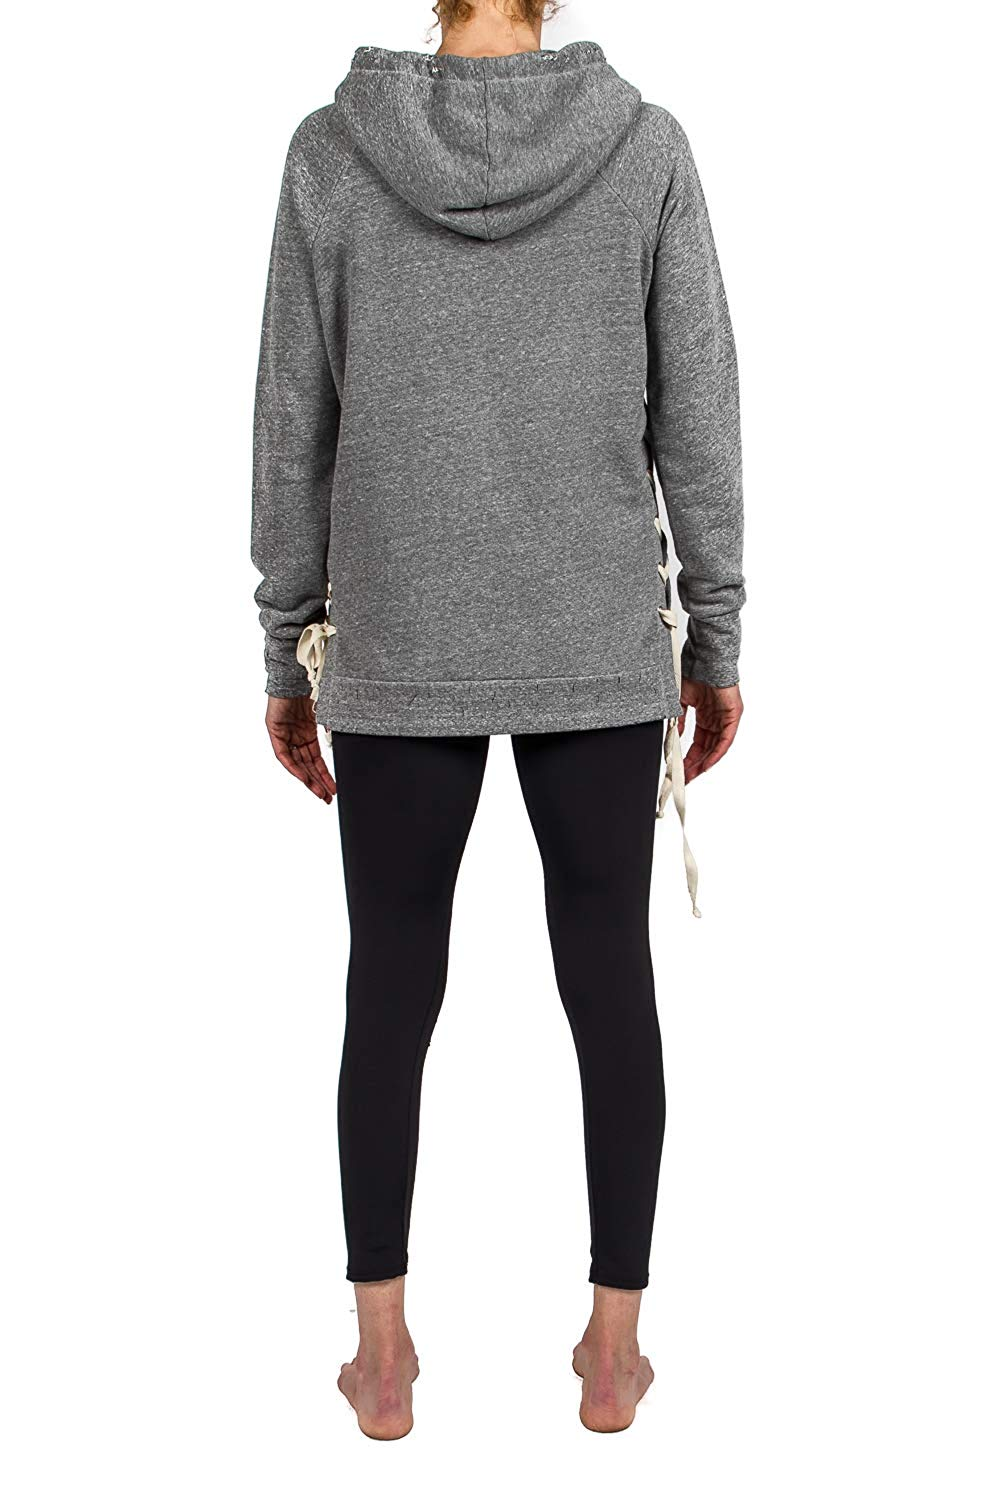 Black Orchid Lace Down Hoodie Sweatshirt - Small